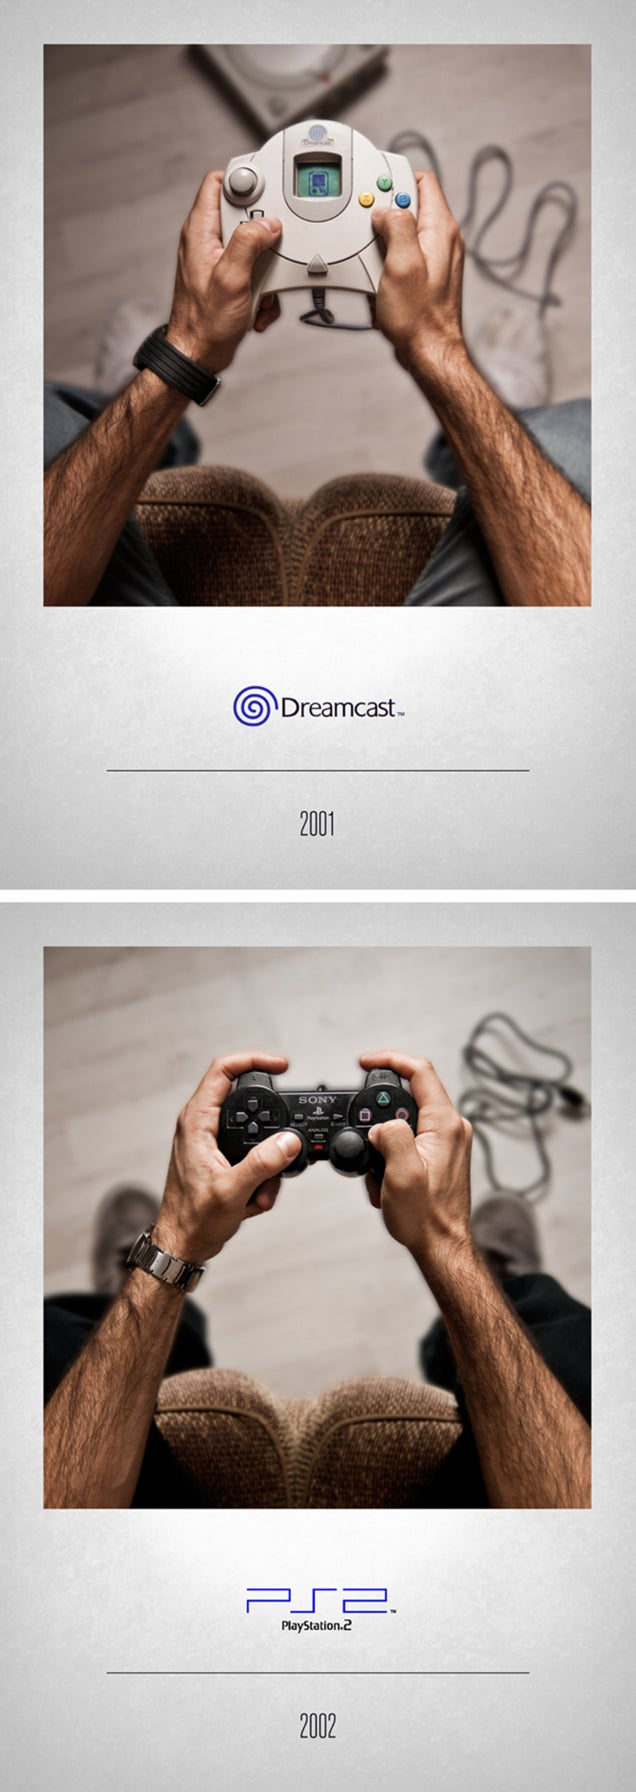 The evolution of video game controllers in 16 cool photos